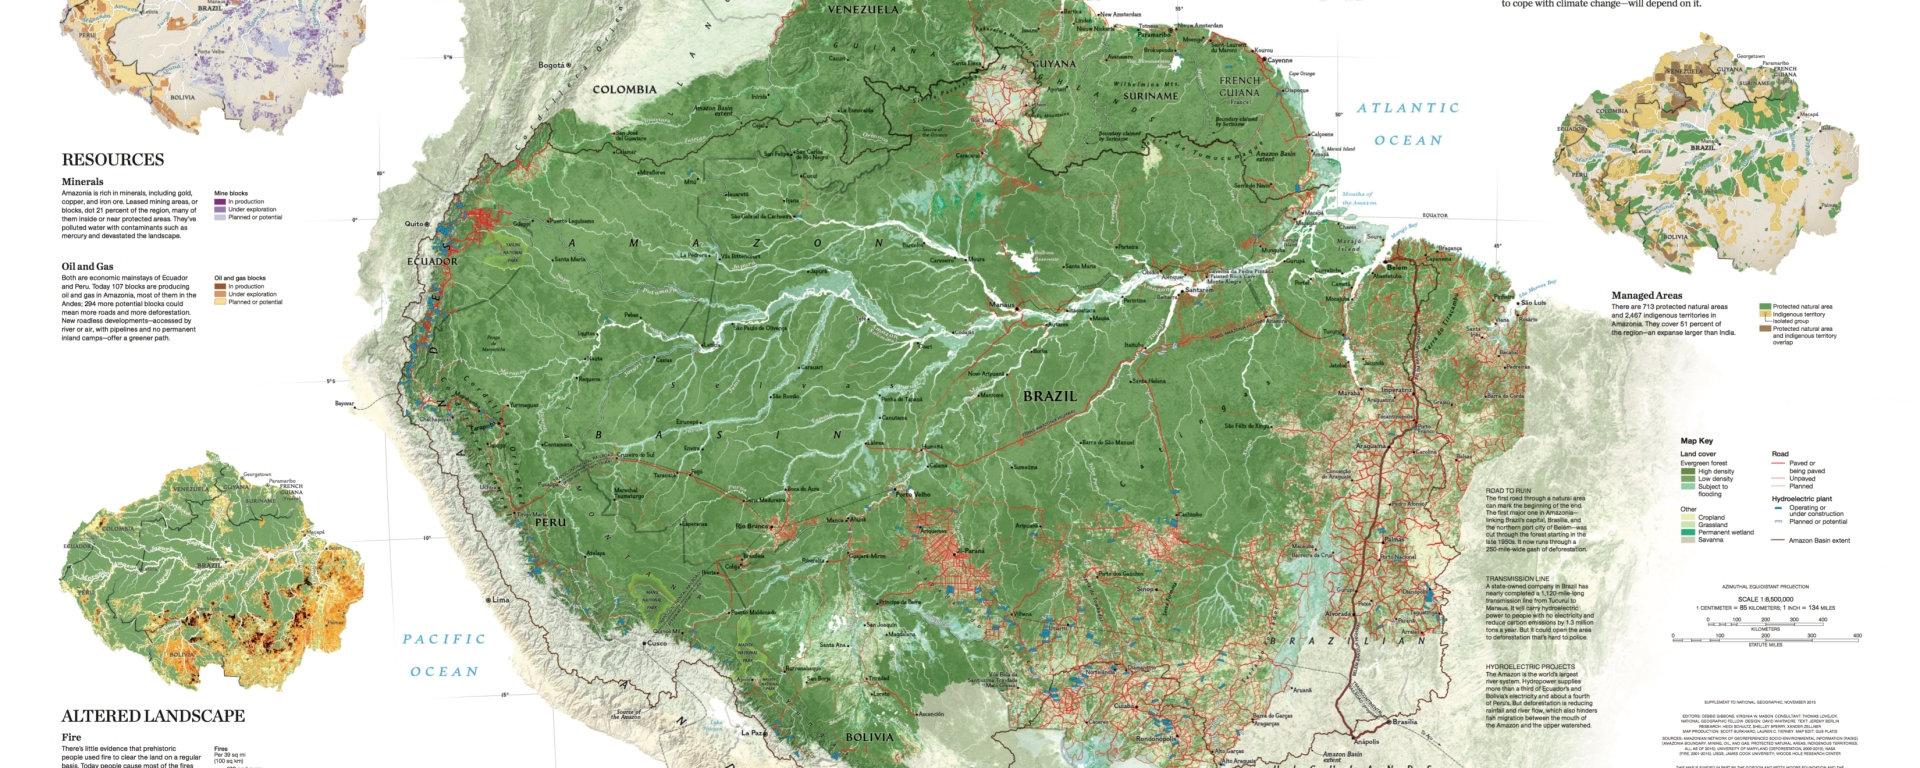 The Amazon Rain Forest Is Not an Untamed Jungle – National ... on iguazu falls, victoria falls, map of atacama desert, map of sea of cortez, pacific ocean, map of niger river, map of euphrates river, angel falls, map of ganges river, map of yangtze river, rio negro, map of mississippi river, map of hudson river, map of amazon basin, map of parana river, map of ohio river, map of amazon rainforest, amazon rainforest, map of huang he river, atlantic ocean, map of rio de la plata, map of lake titicaca, map of suriname, rio de janeiro, map of yellow river, south america, map of river thames, congo river, map of lake maracaibo, map of indus river, niger river, amazon basin,